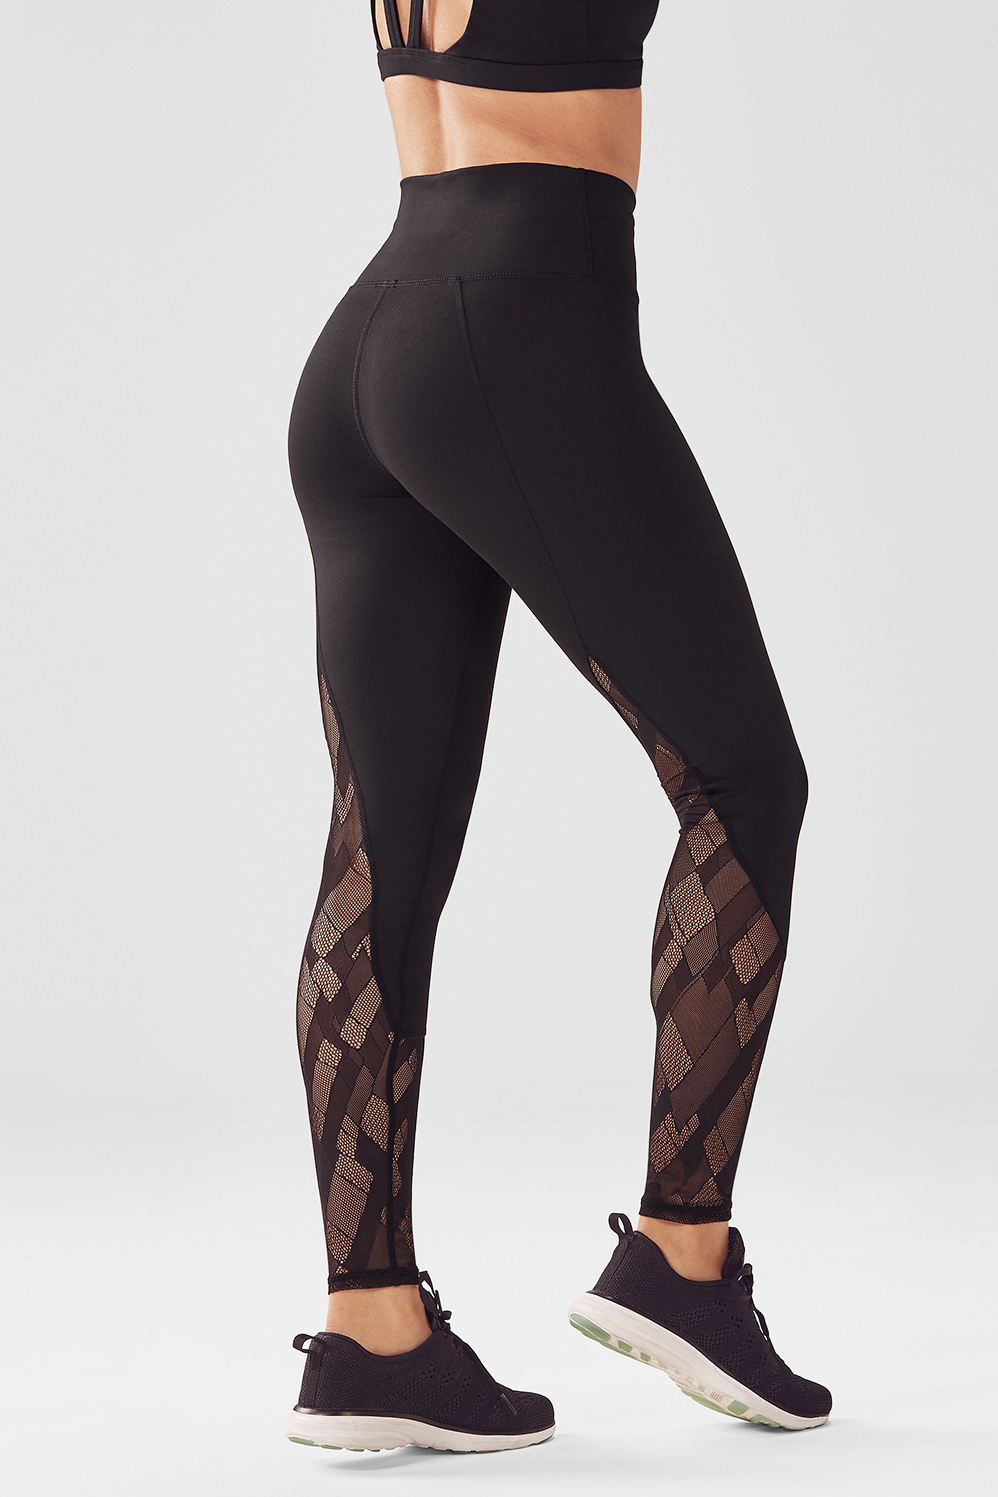 Fabletics Tight High-Waisted Mesh Powerhold Legging Womens Black Size L